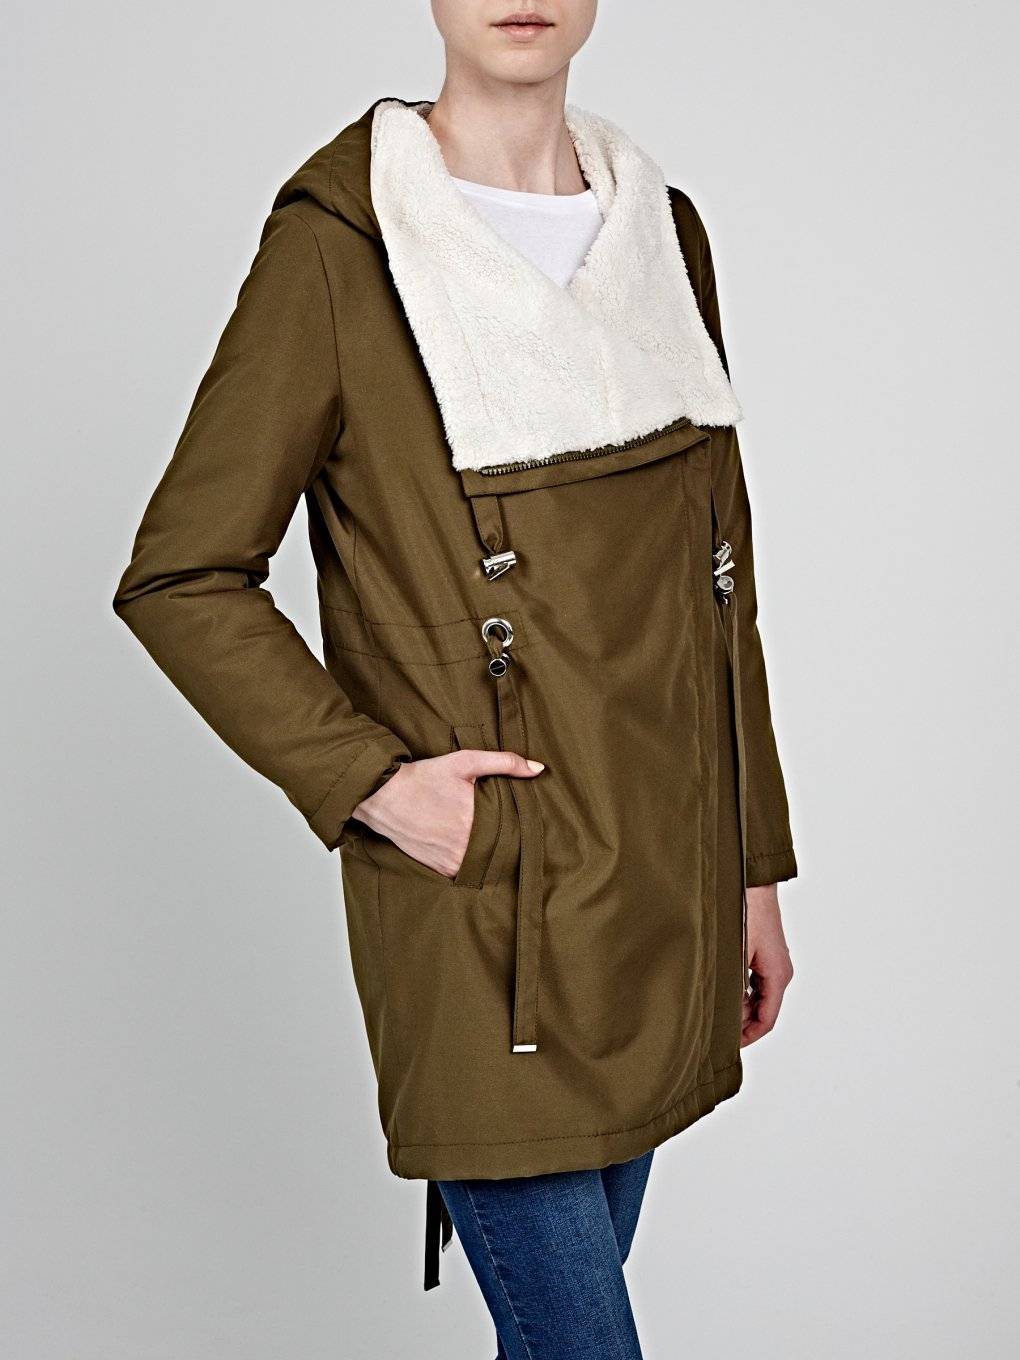 Pile lined parka with asymmetrical zipper